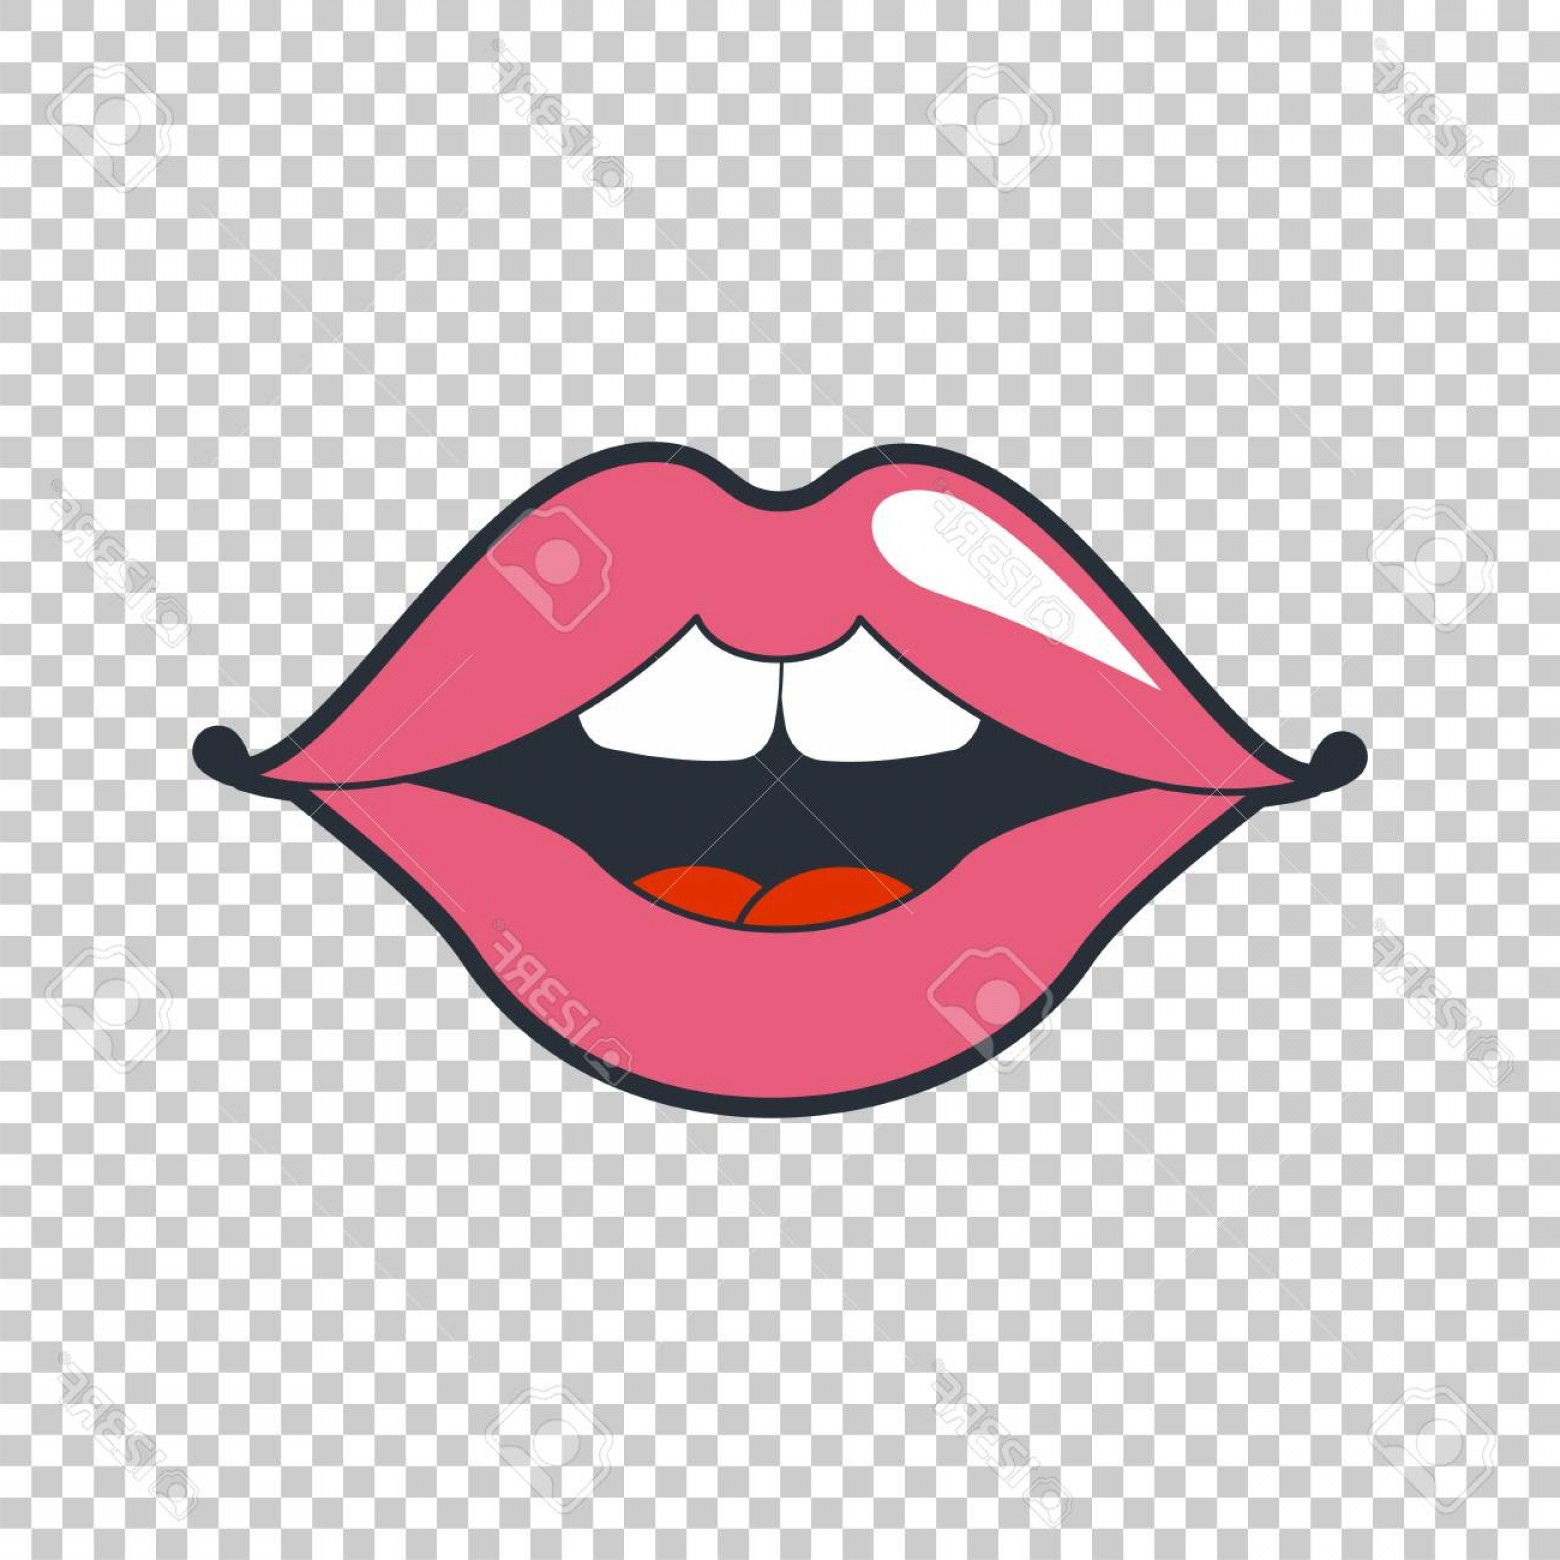 Pink Lips Vector Clip Art: Photoquirky Lips Vector Patch Sticker Isolated On A Transparent Background Cool Sexy Pink Lips Selphie Ca